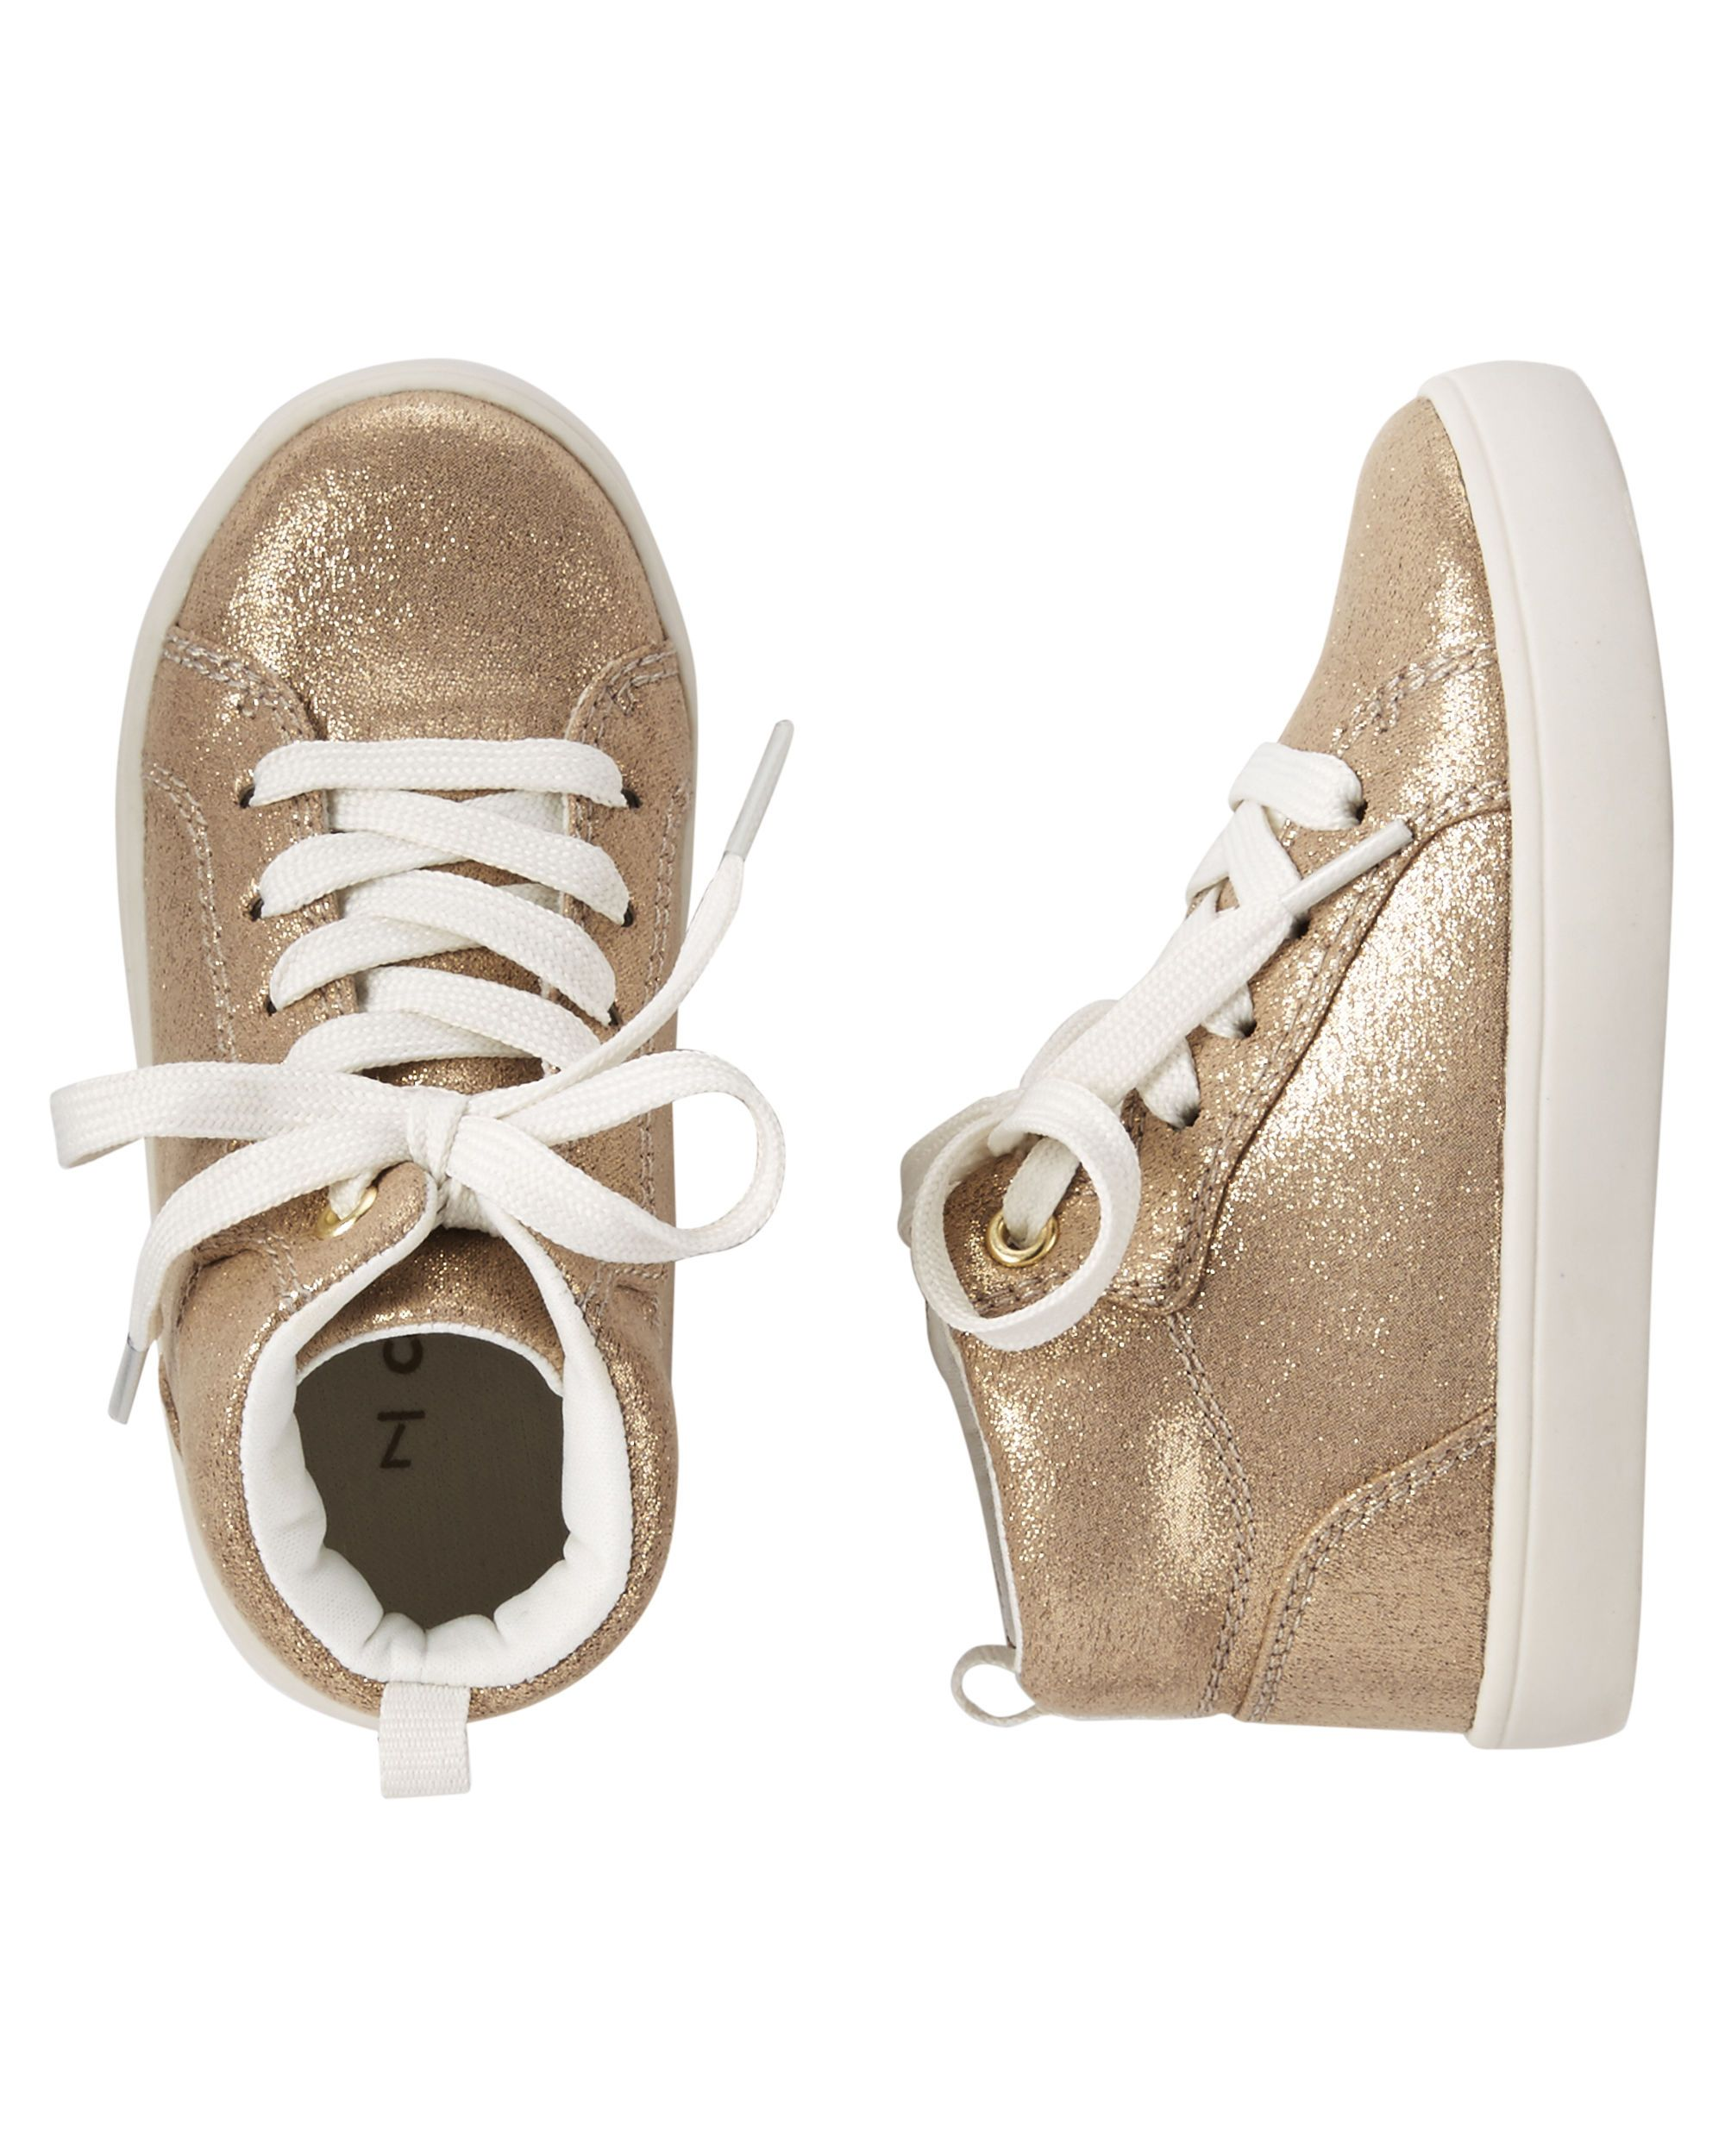 Phpmyadmin2014 - Phpmyadmin2014 Gold Baby Girl Shoes Baby Girl Carter S Gold High Top Sneakers From Oshkosh